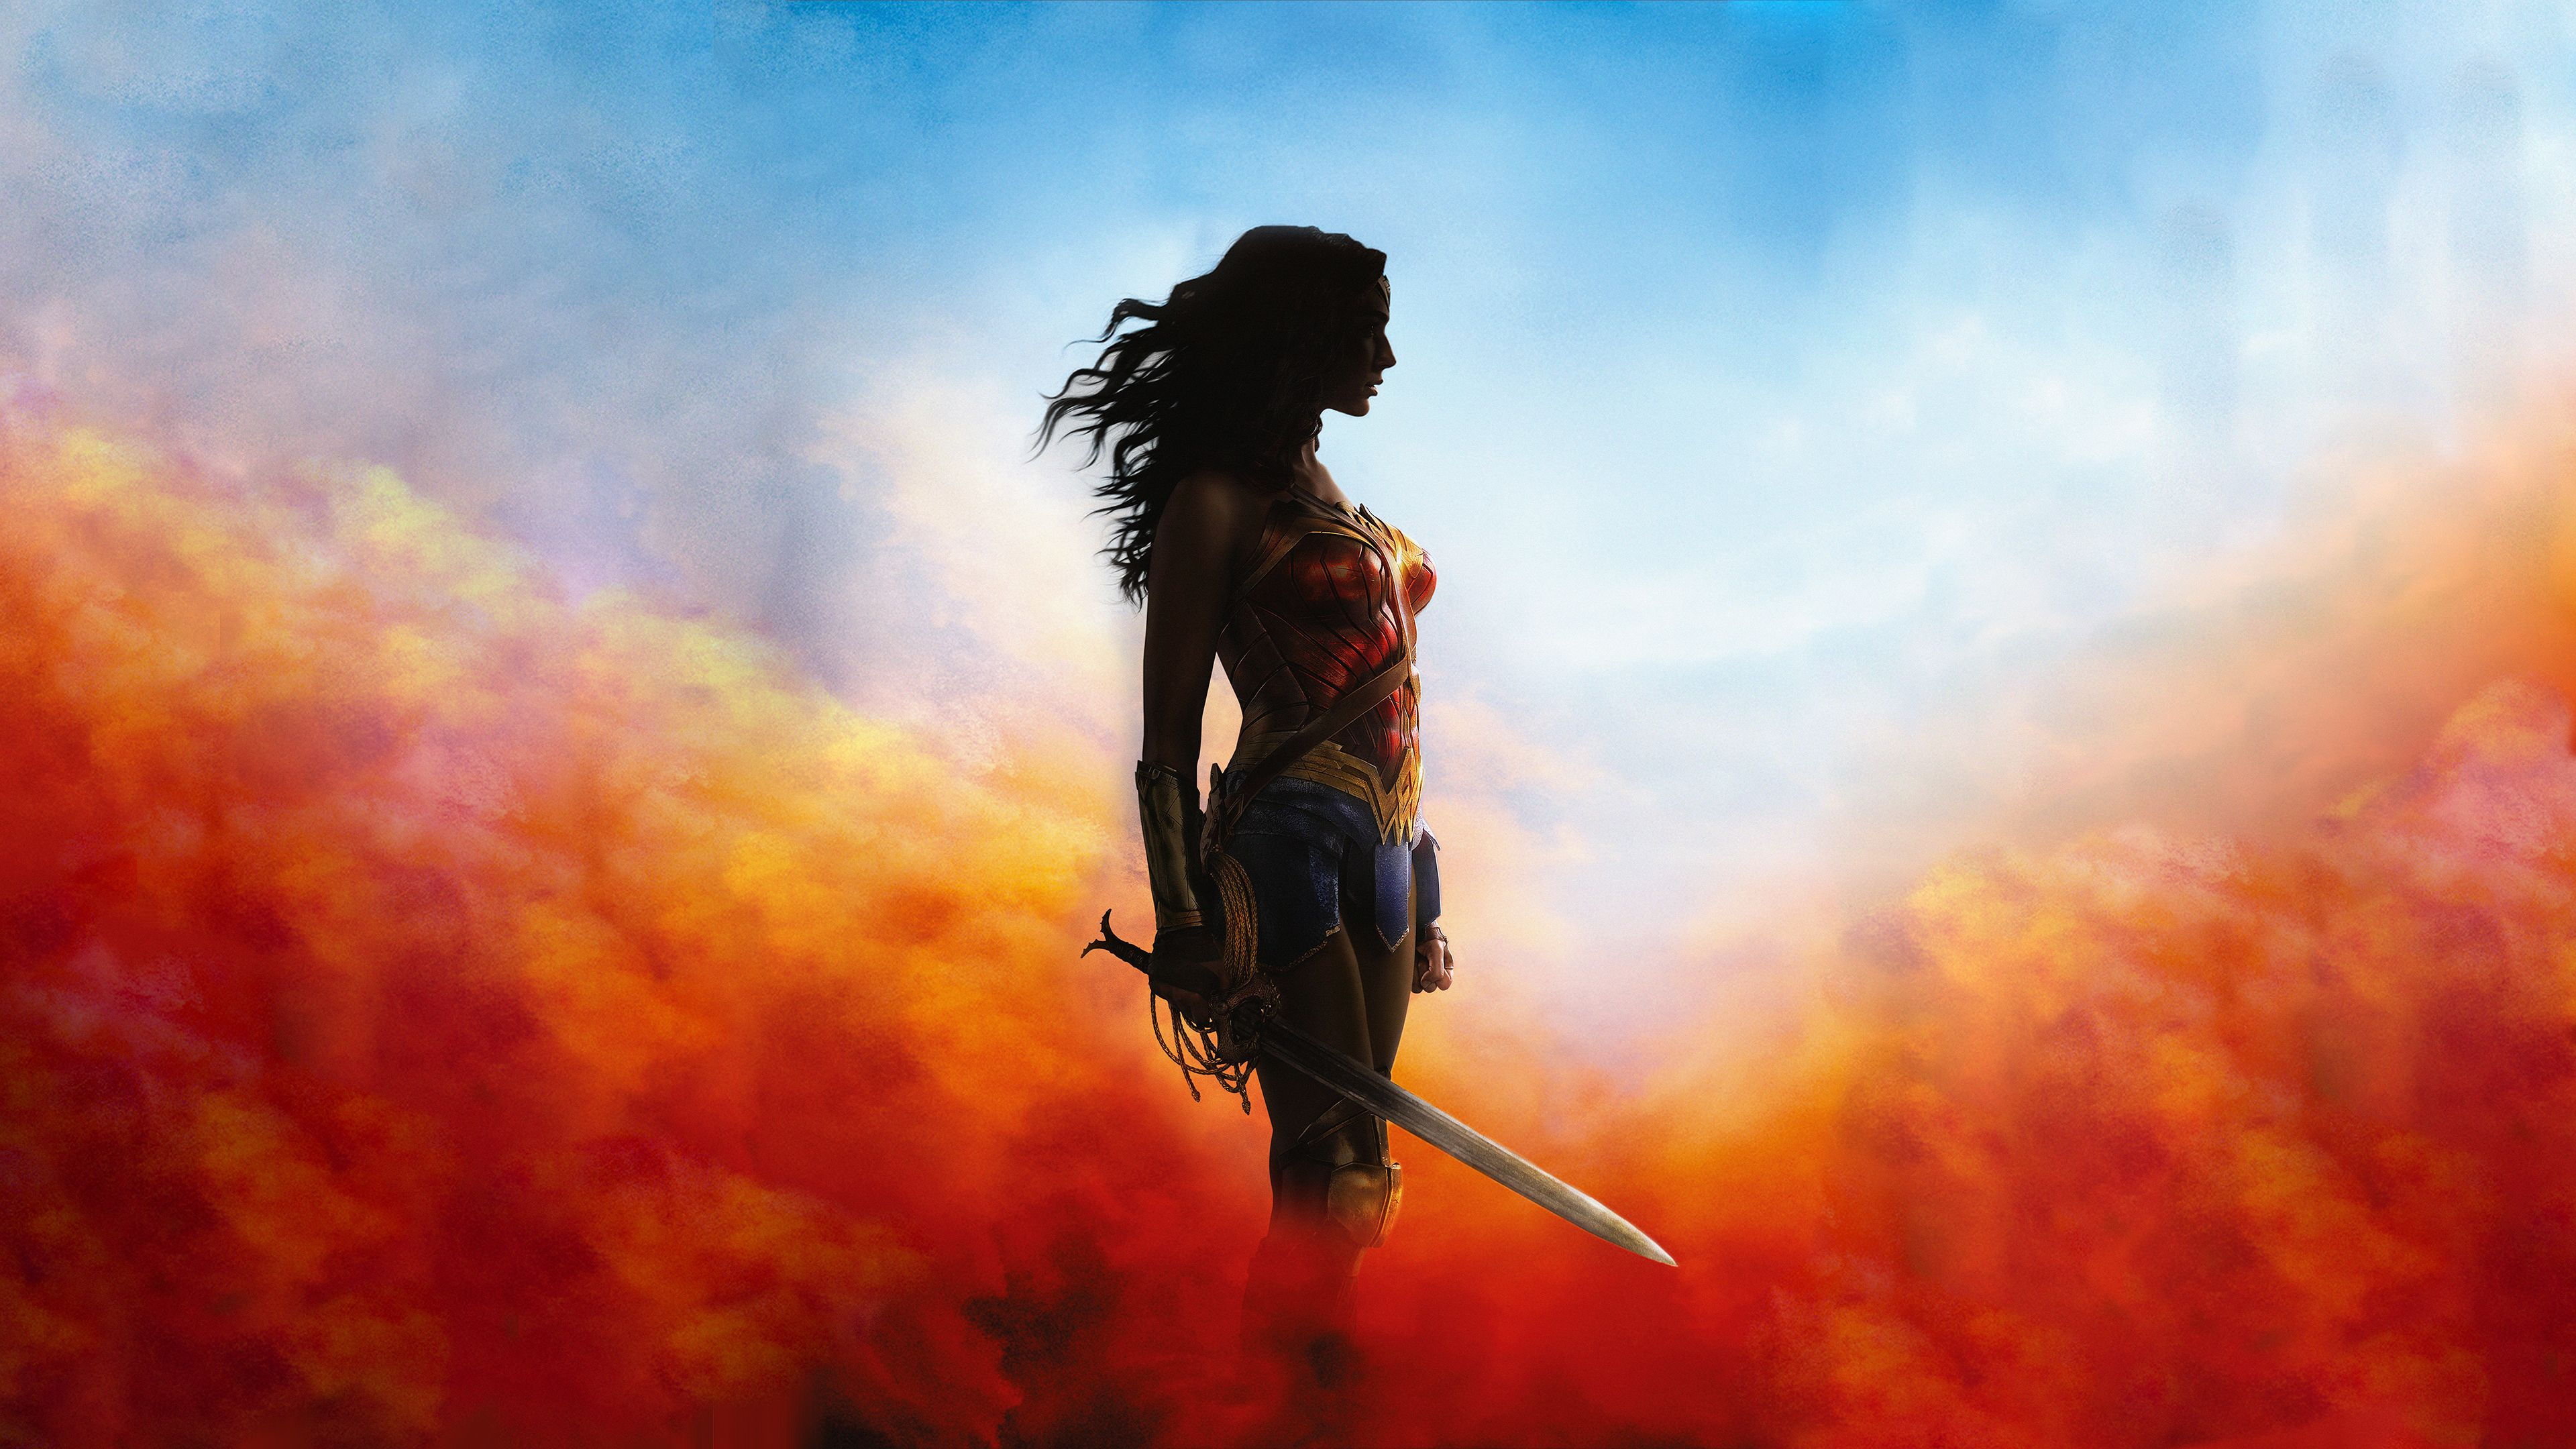 4k Wonder Woman 2018 Wonder Woman Wallpapers Superheroes Wallpapers Hd Wallpapers 4k Wallpapers Wonder Woman 2017 Poster Wonder Woman Lara Croft Wallpaper